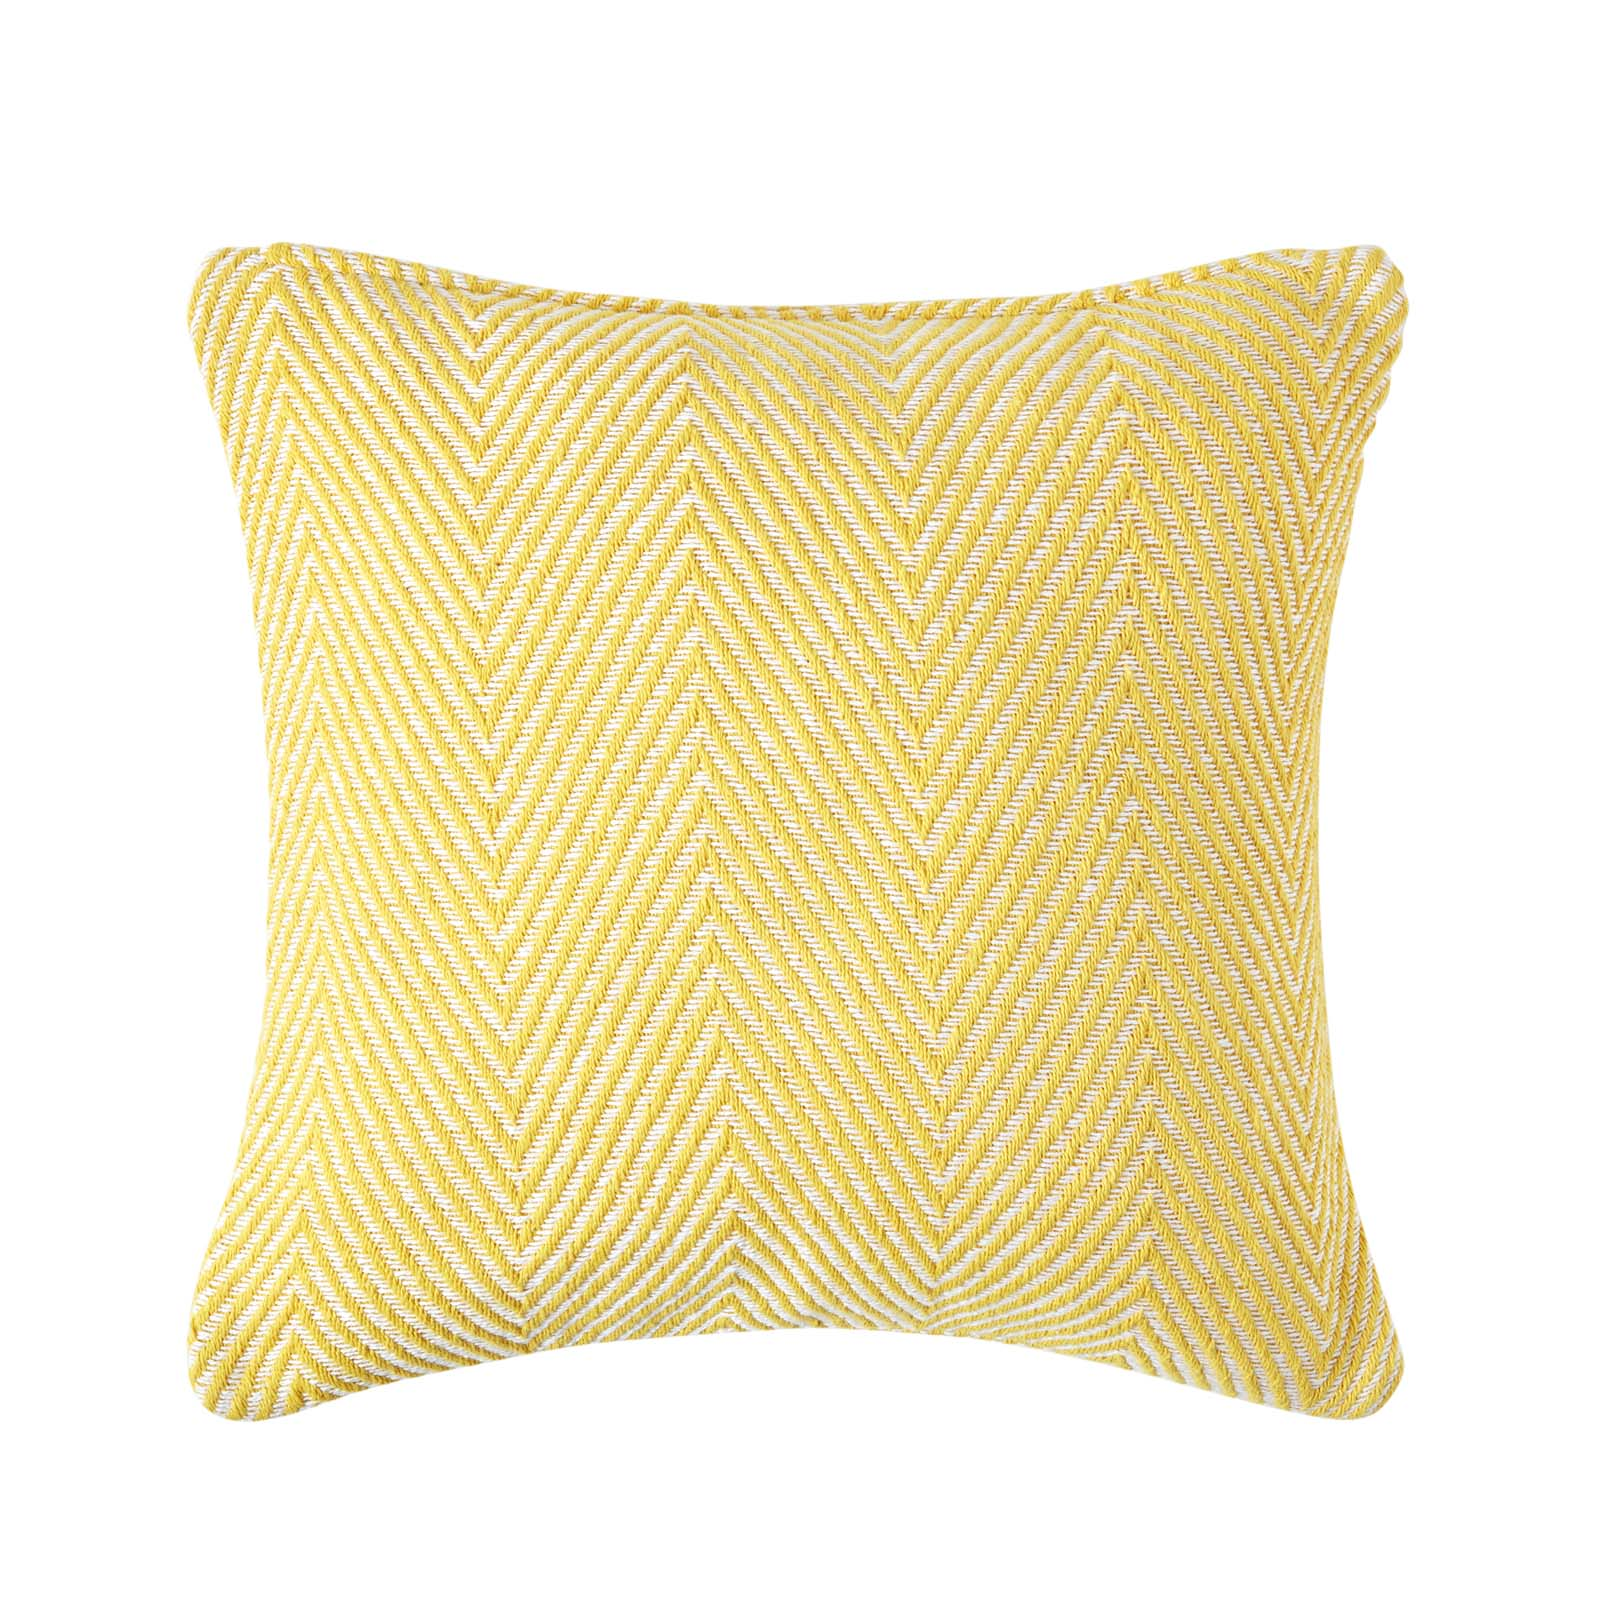 Cushion cover, £9.99, Homescapes